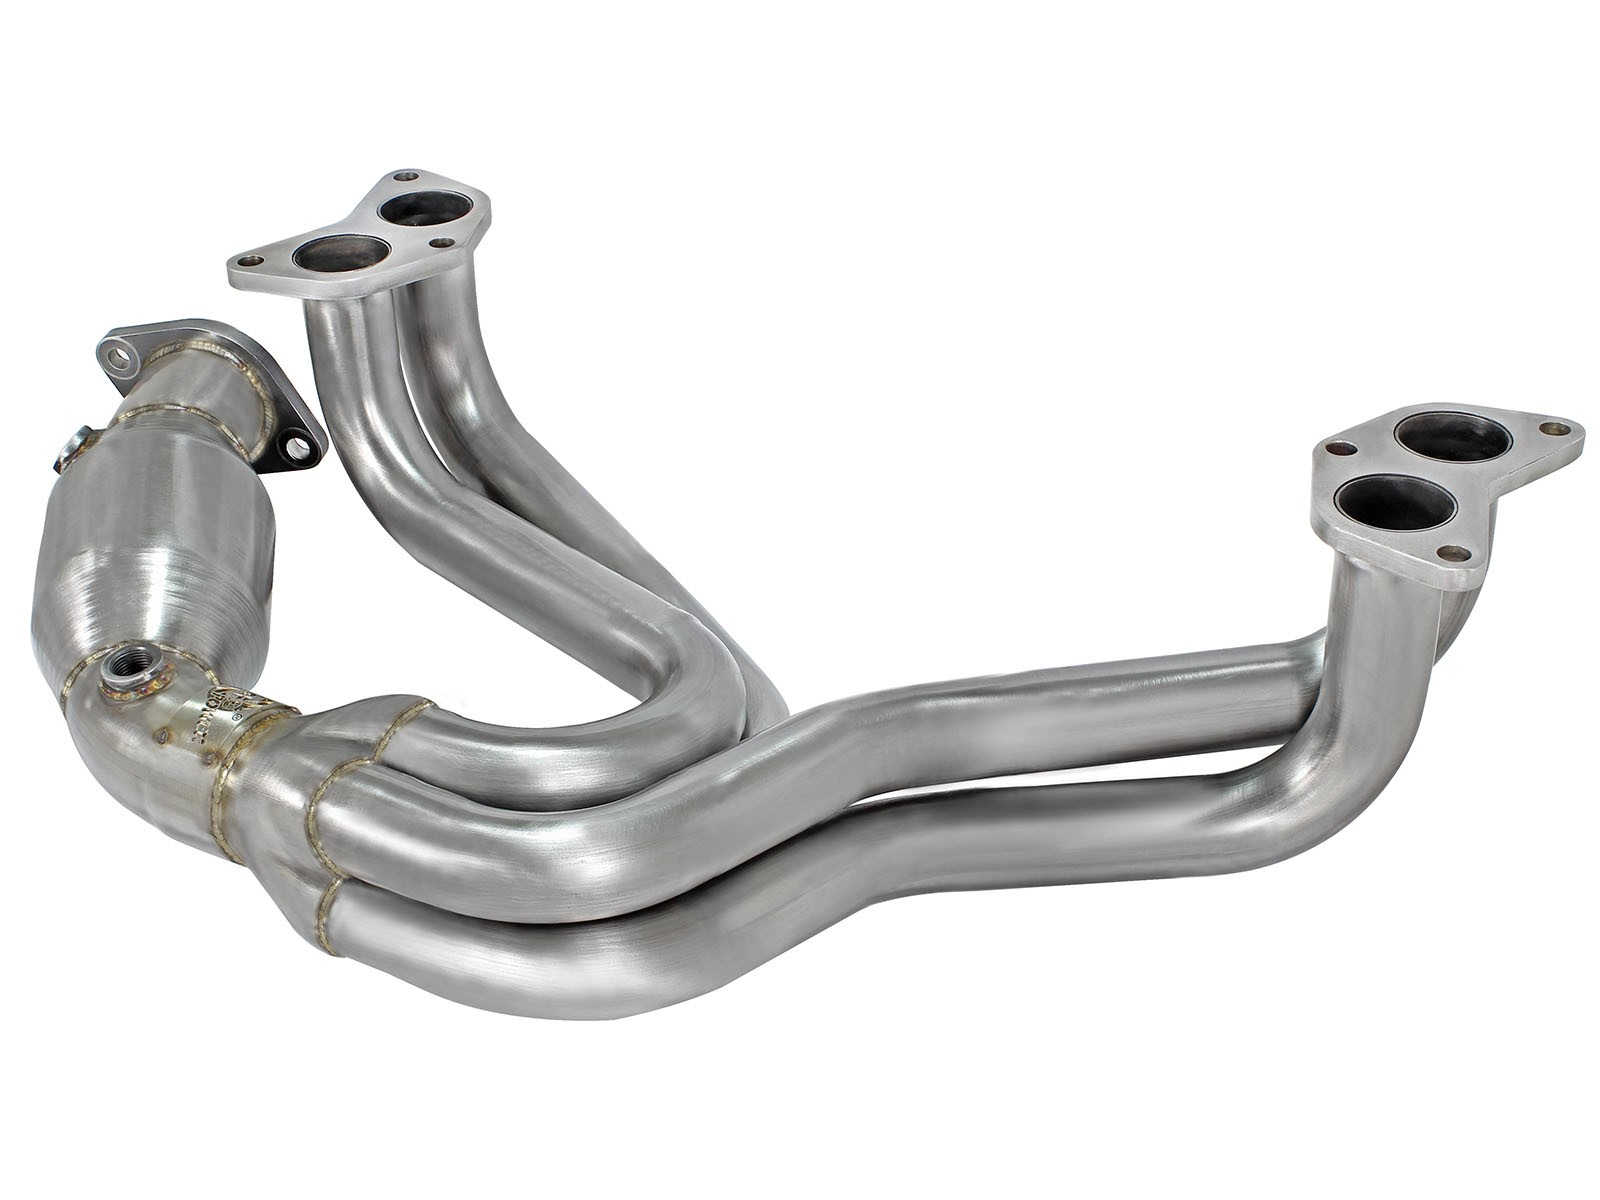 Twisted Steel Long Tube Header Street Series Afe Power Subaru Brz Engine Diagram Adds Up To 10 Hp Horsepower 13 Lbs X Ft Torque Max Gains